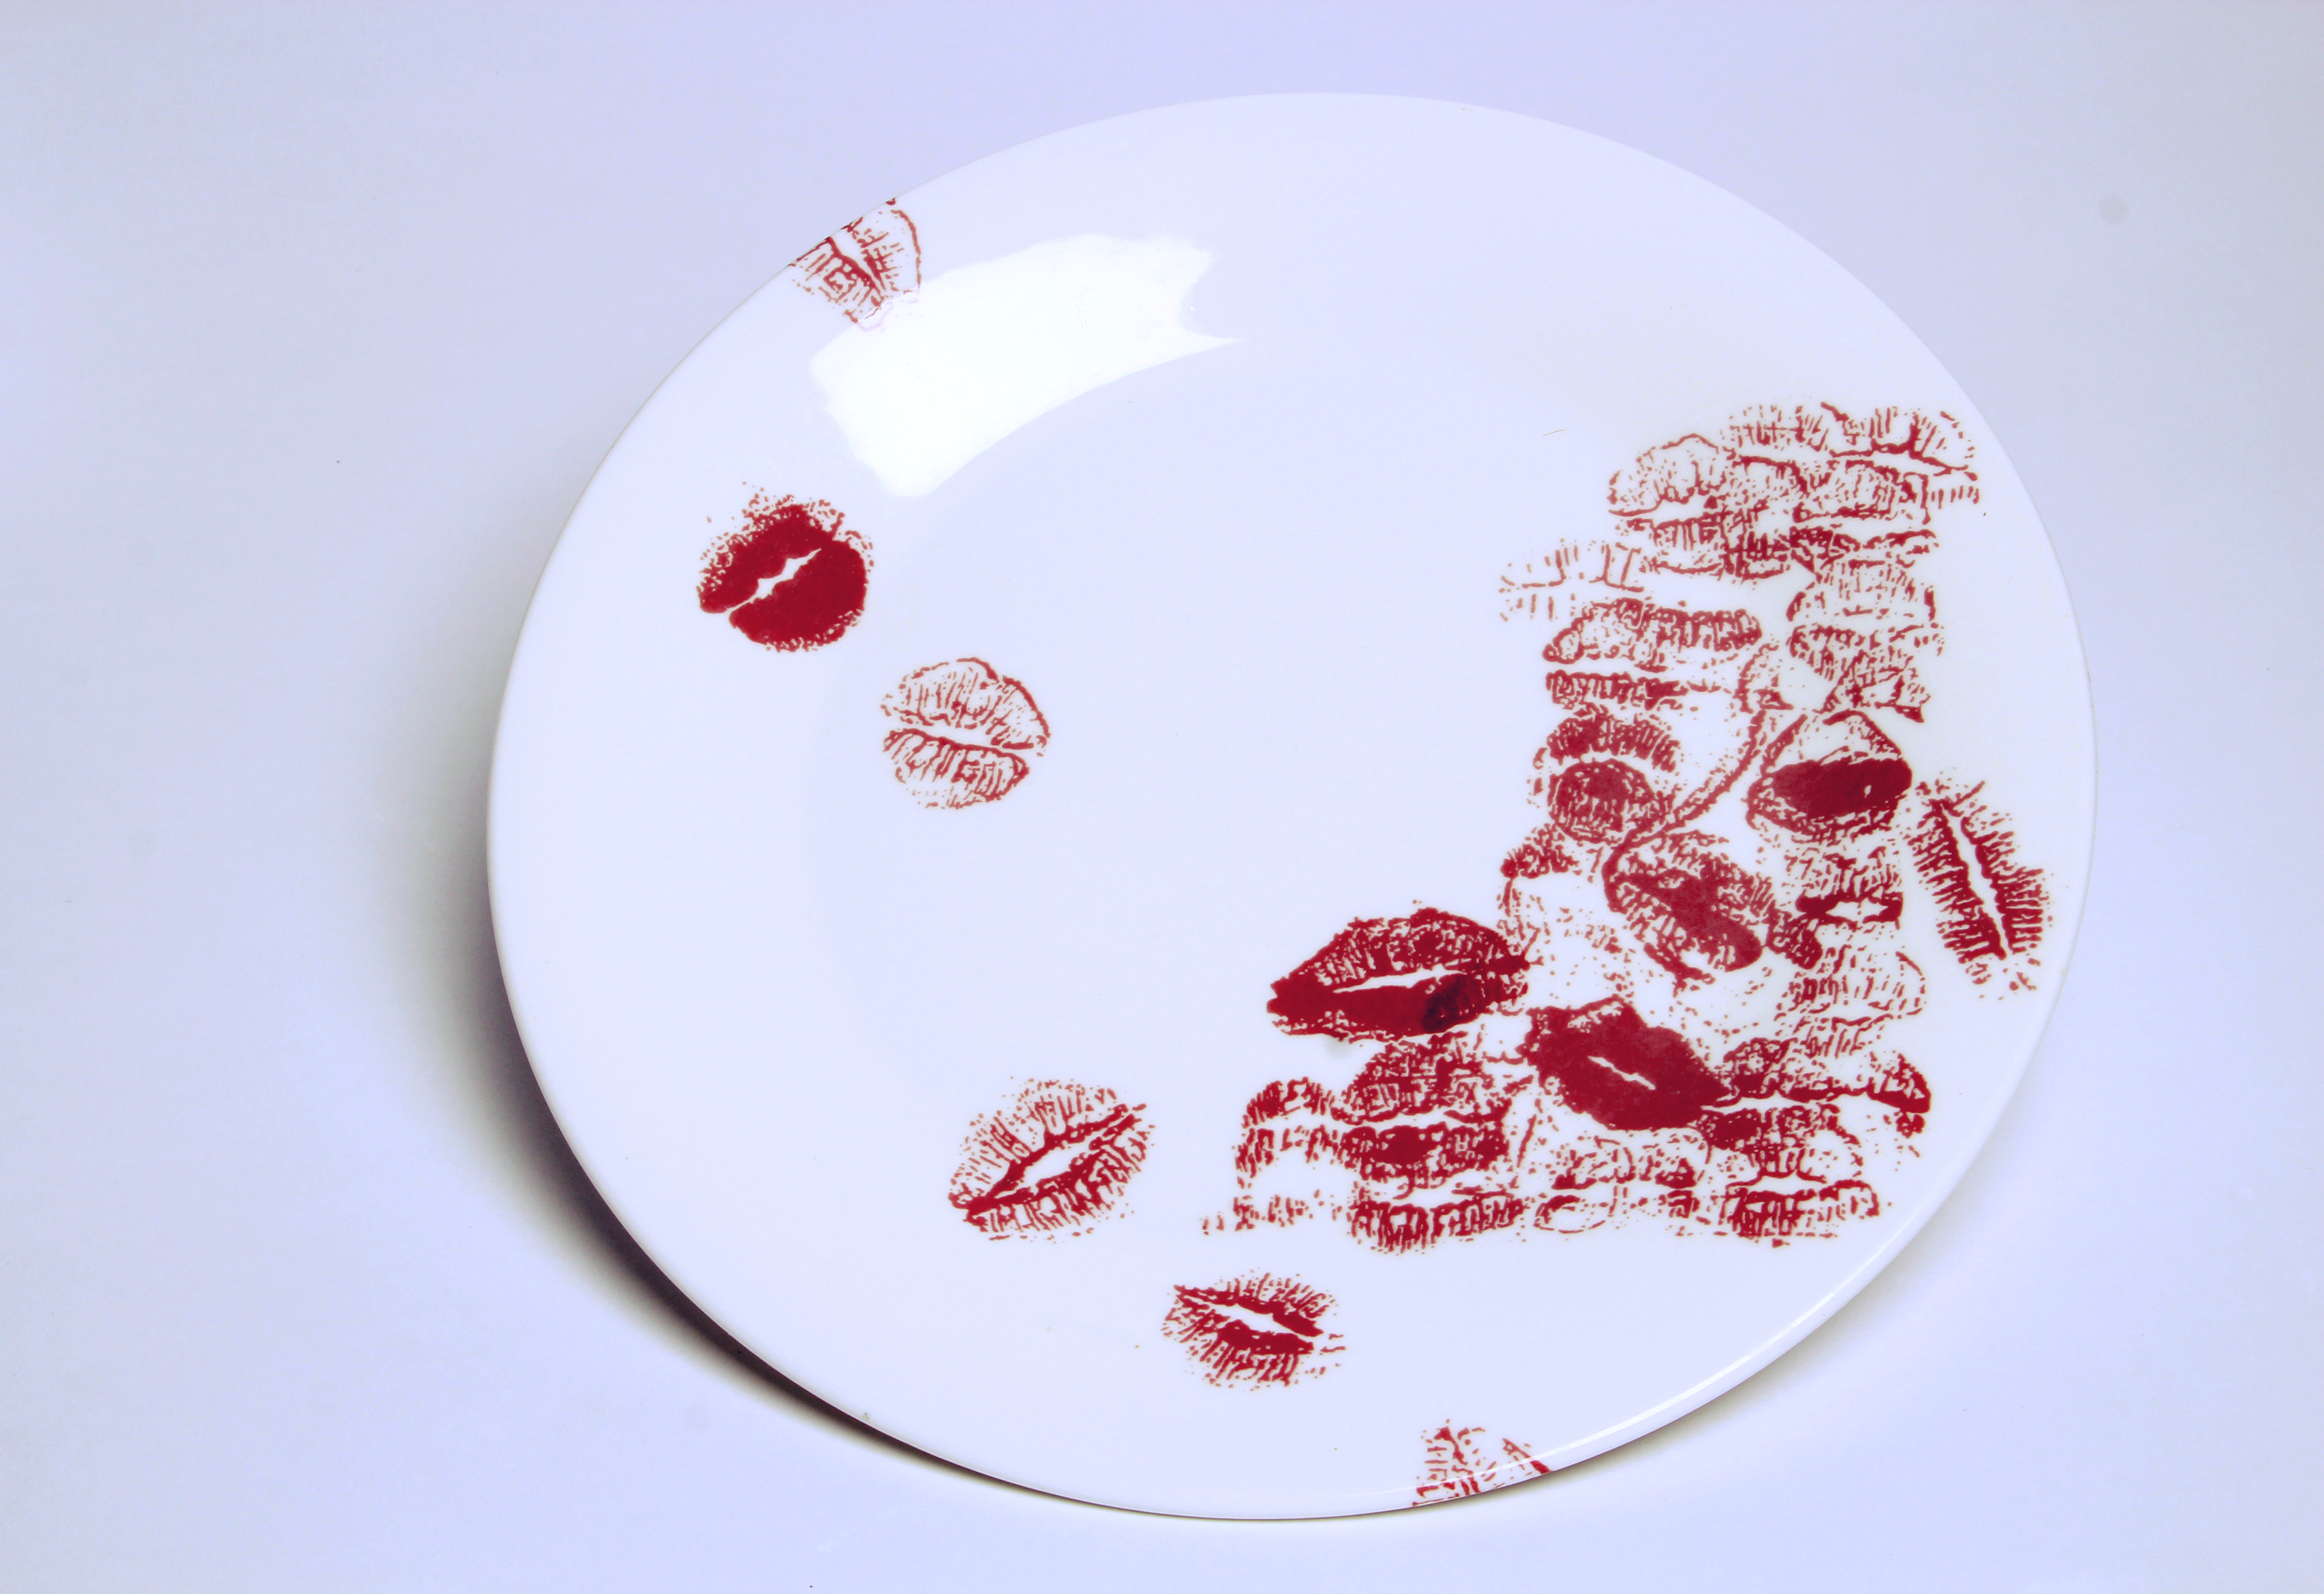 The Kissing plates